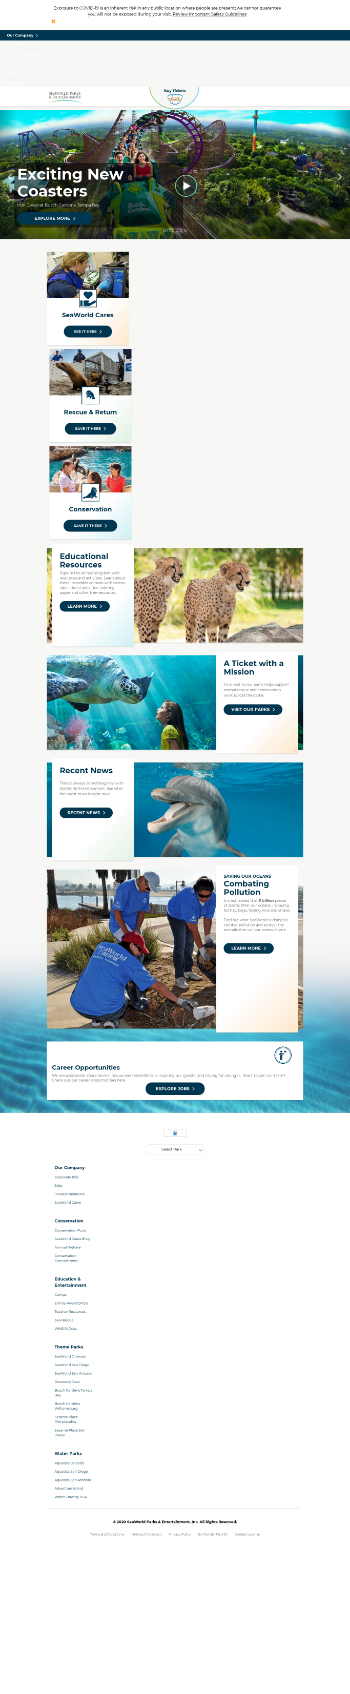 SeaWorld Entertainment, Inc. Website Screenshot